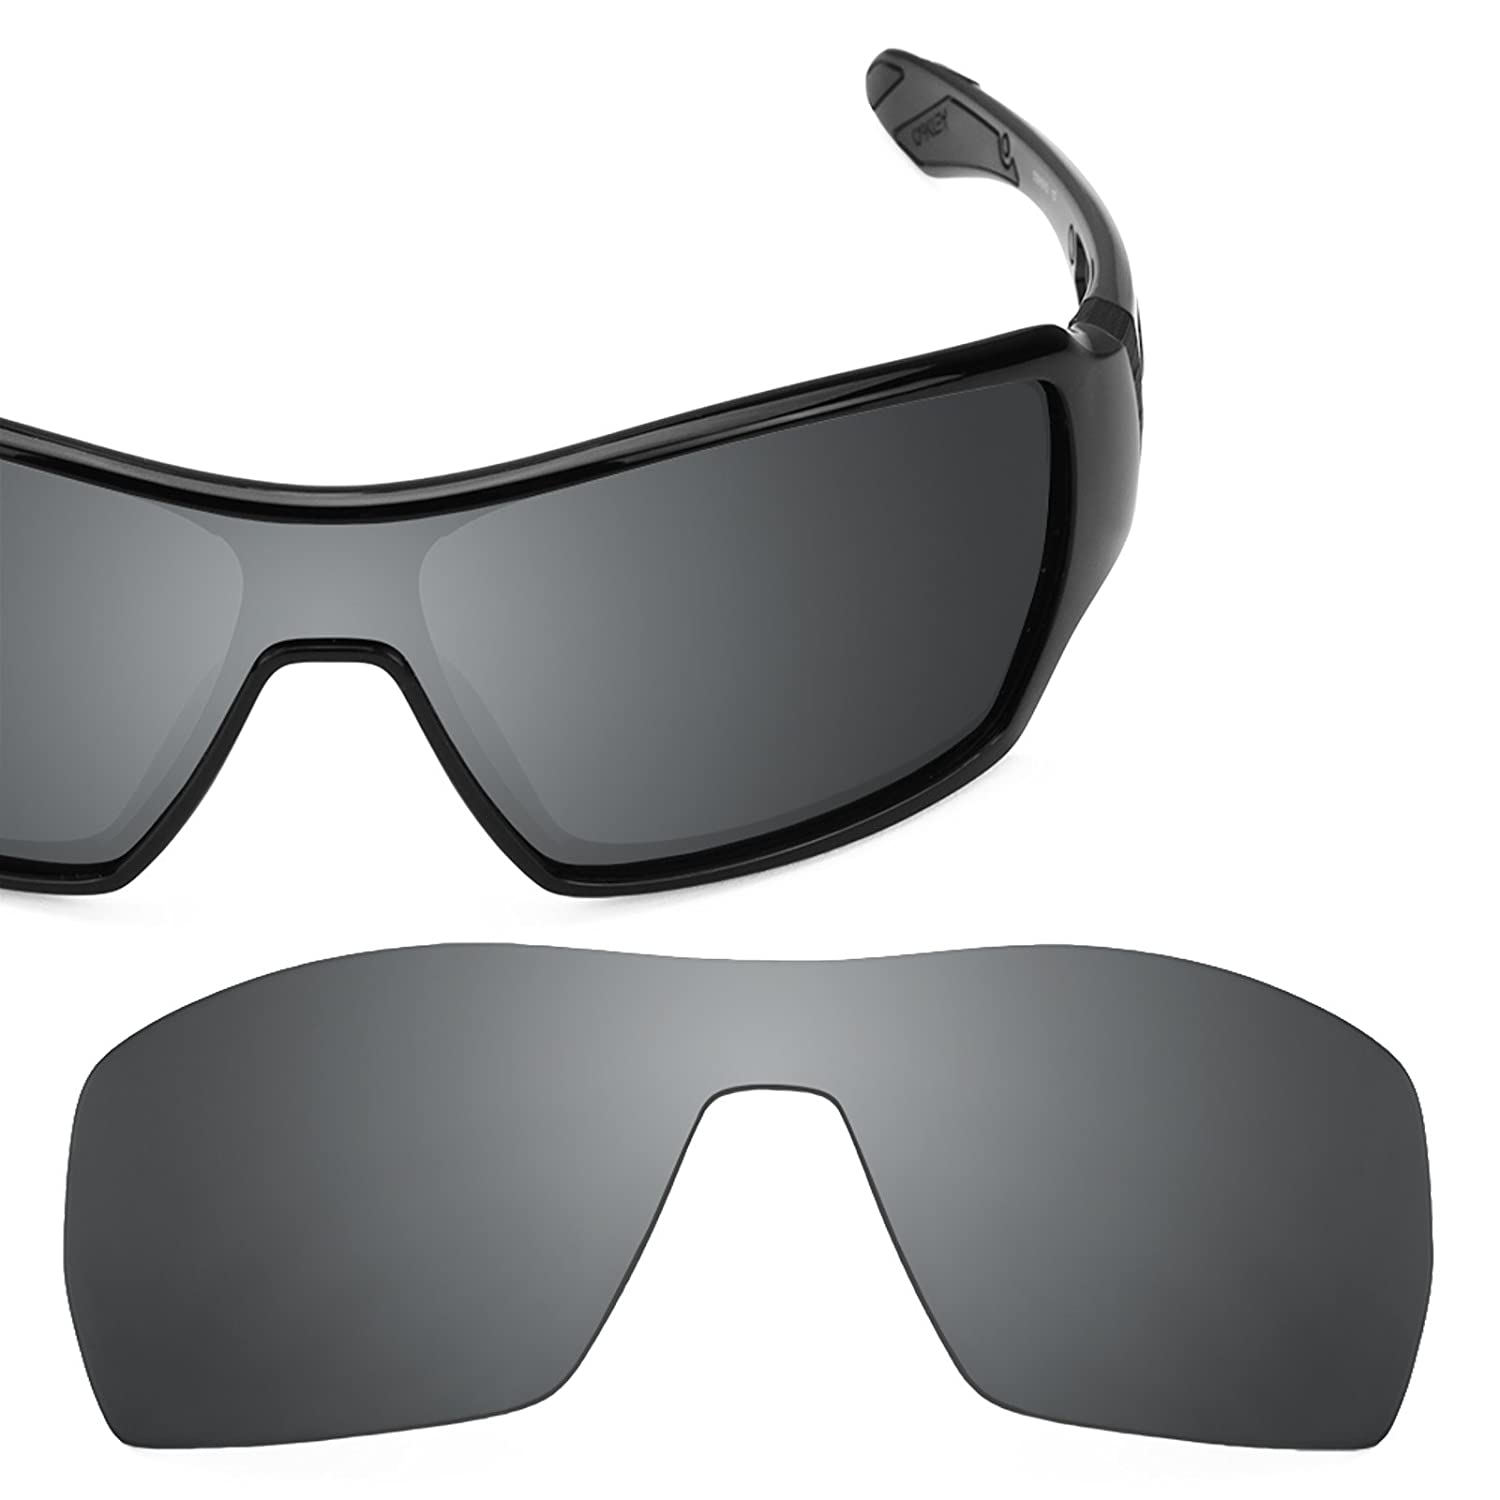 96e7af3400e7 Revant Polarized Replacement Lenses for Oakley Offshoot Black Chrome  MirrorShield at Amazon Men's Clothing store: